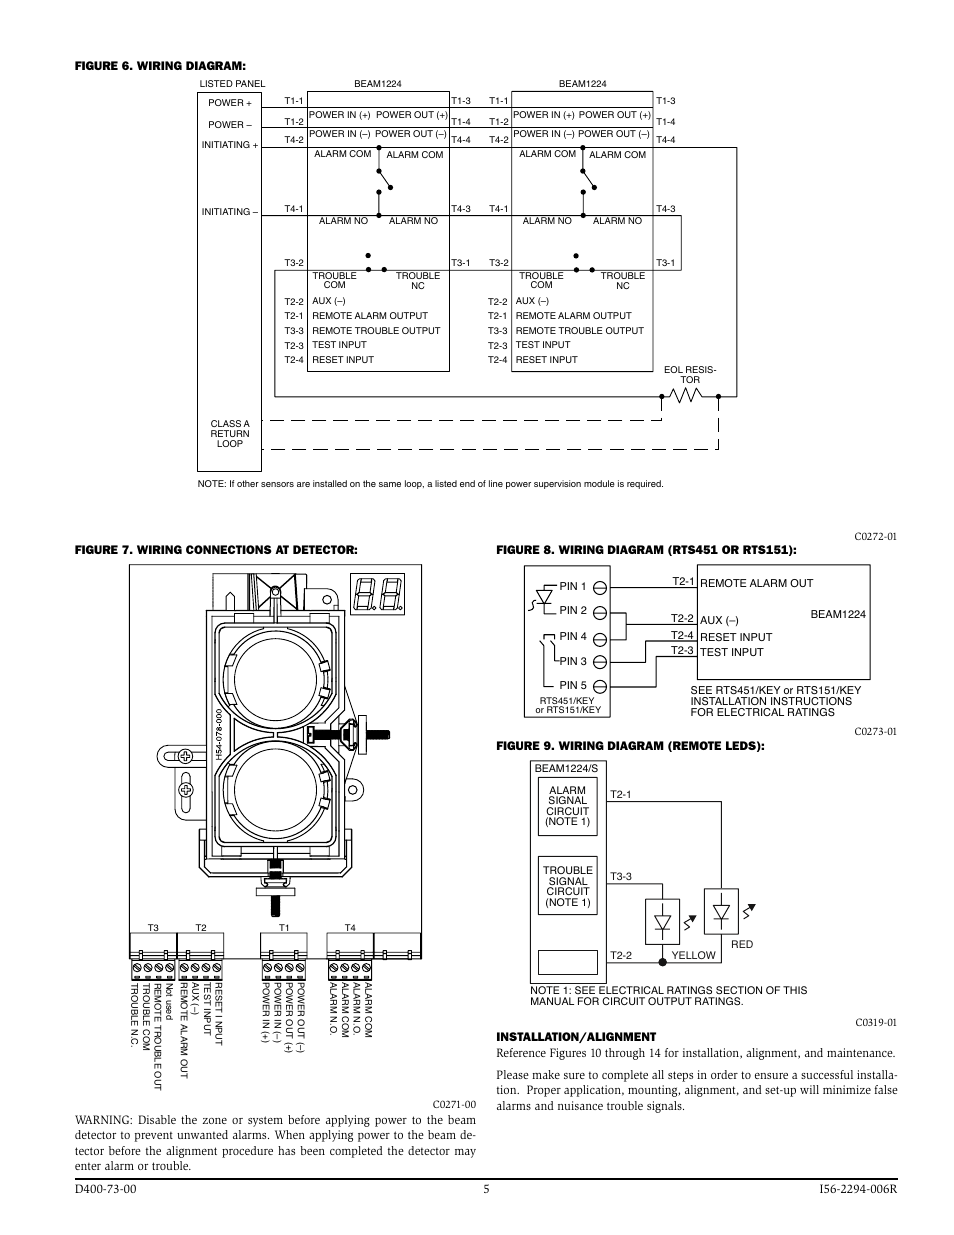 system sensor beam1224 beam1224s page5 system sensor beam1224, beam1224s user manual page 5 13 system sensor dh1851ac wiring diagrams at panicattacktreatment.co